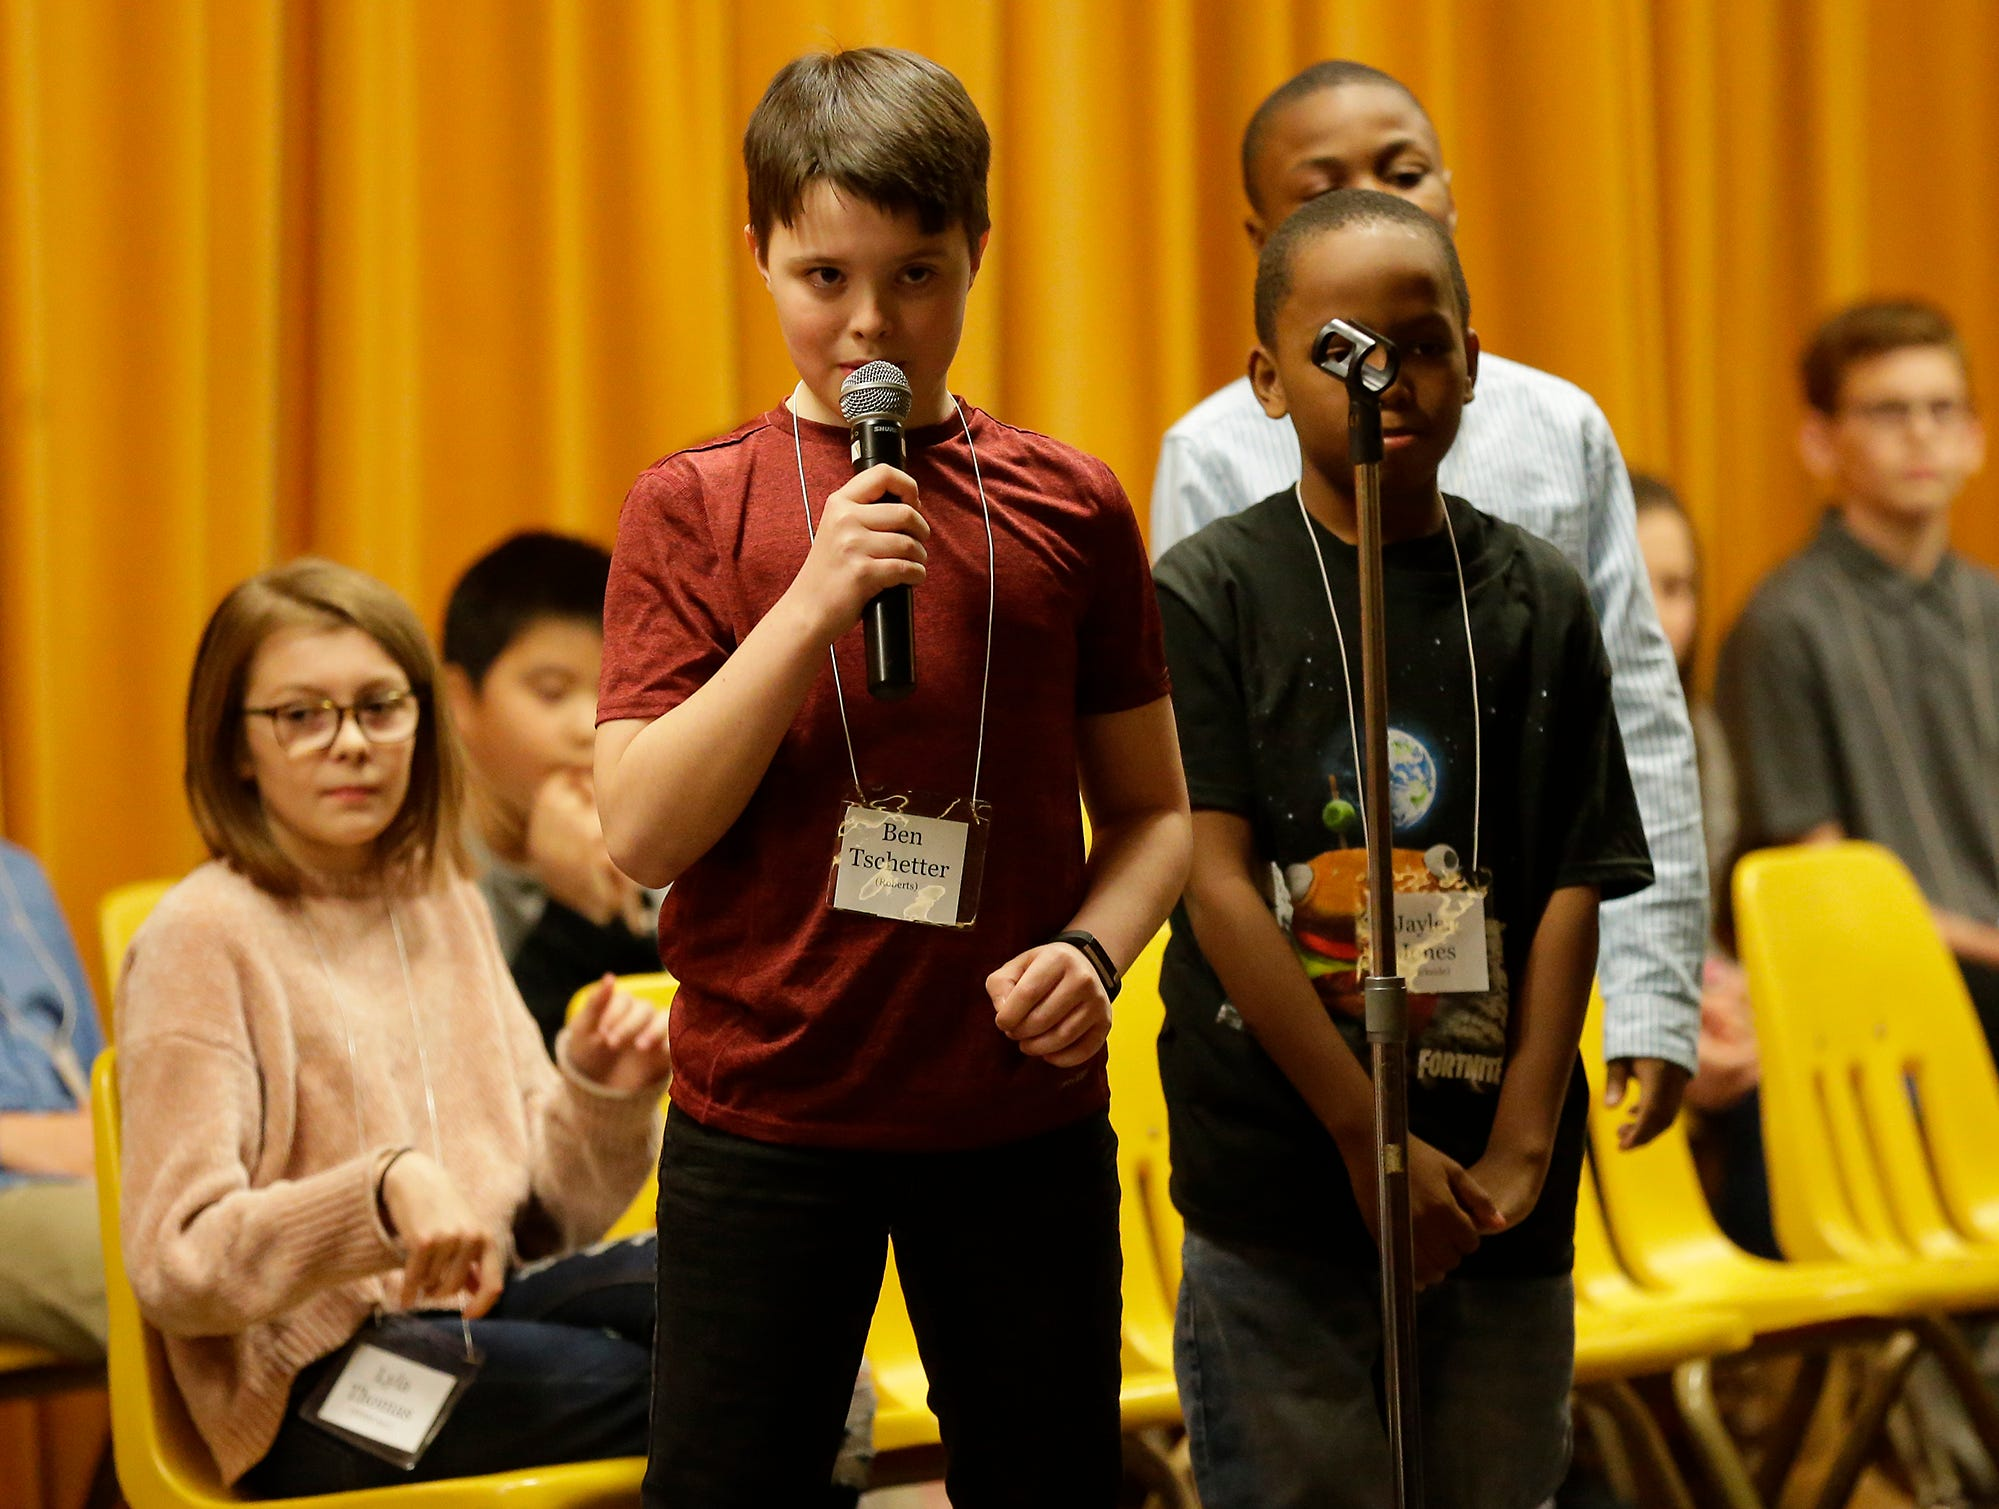 Ben Tschetter of Roberts competes in the Fond du Lac citywide spelling bee Tuesday, February 26, 2019 at These Middle School in Fond du Lac, Wis. Tschetter ended up second in the event. Doug Raflik/USA TODAY NETWORK-Wisconsin